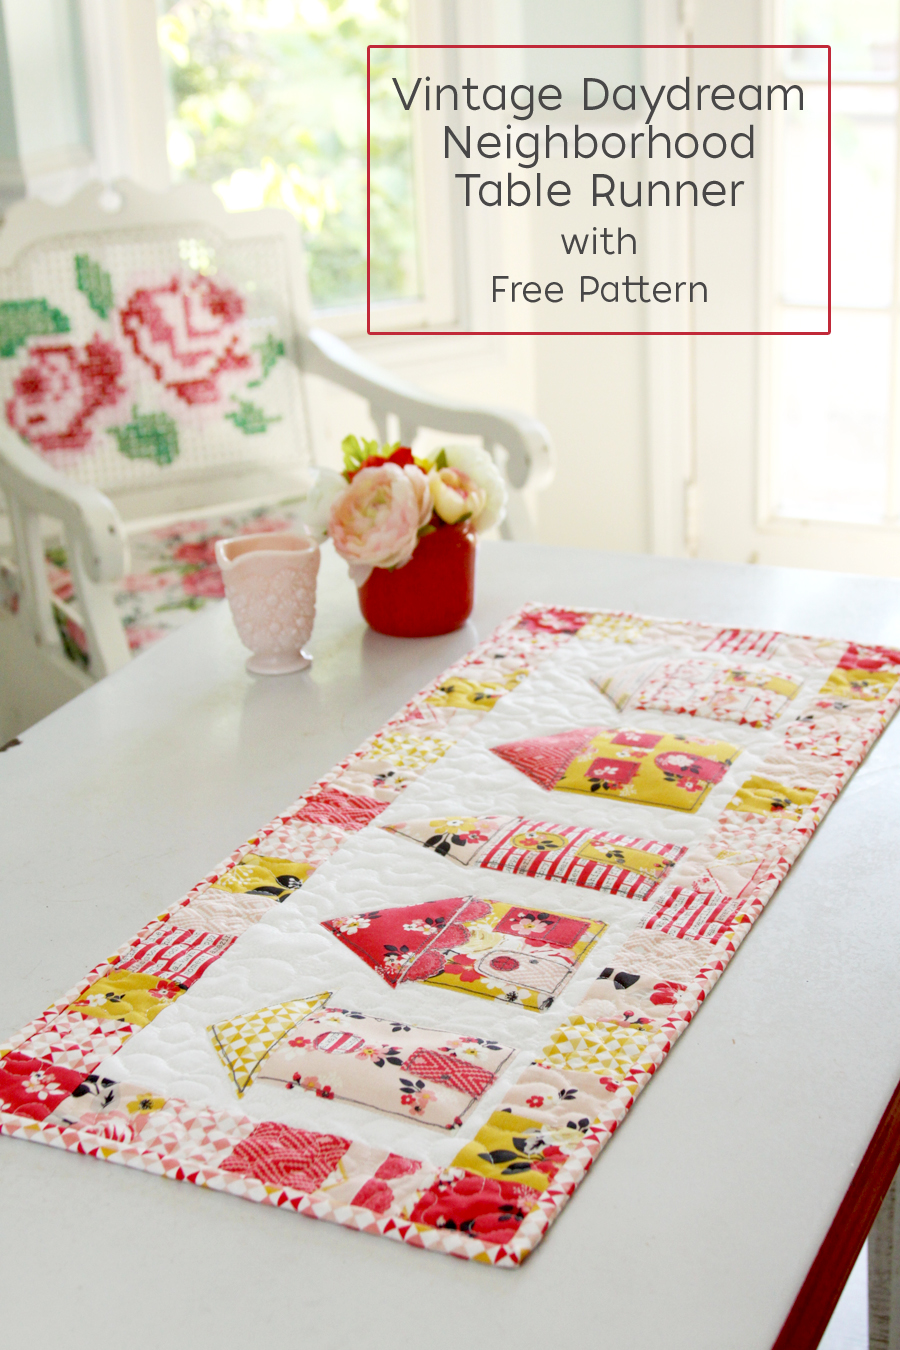 Vintage Daydream Neighborhood Table Runner with Free Pattern -